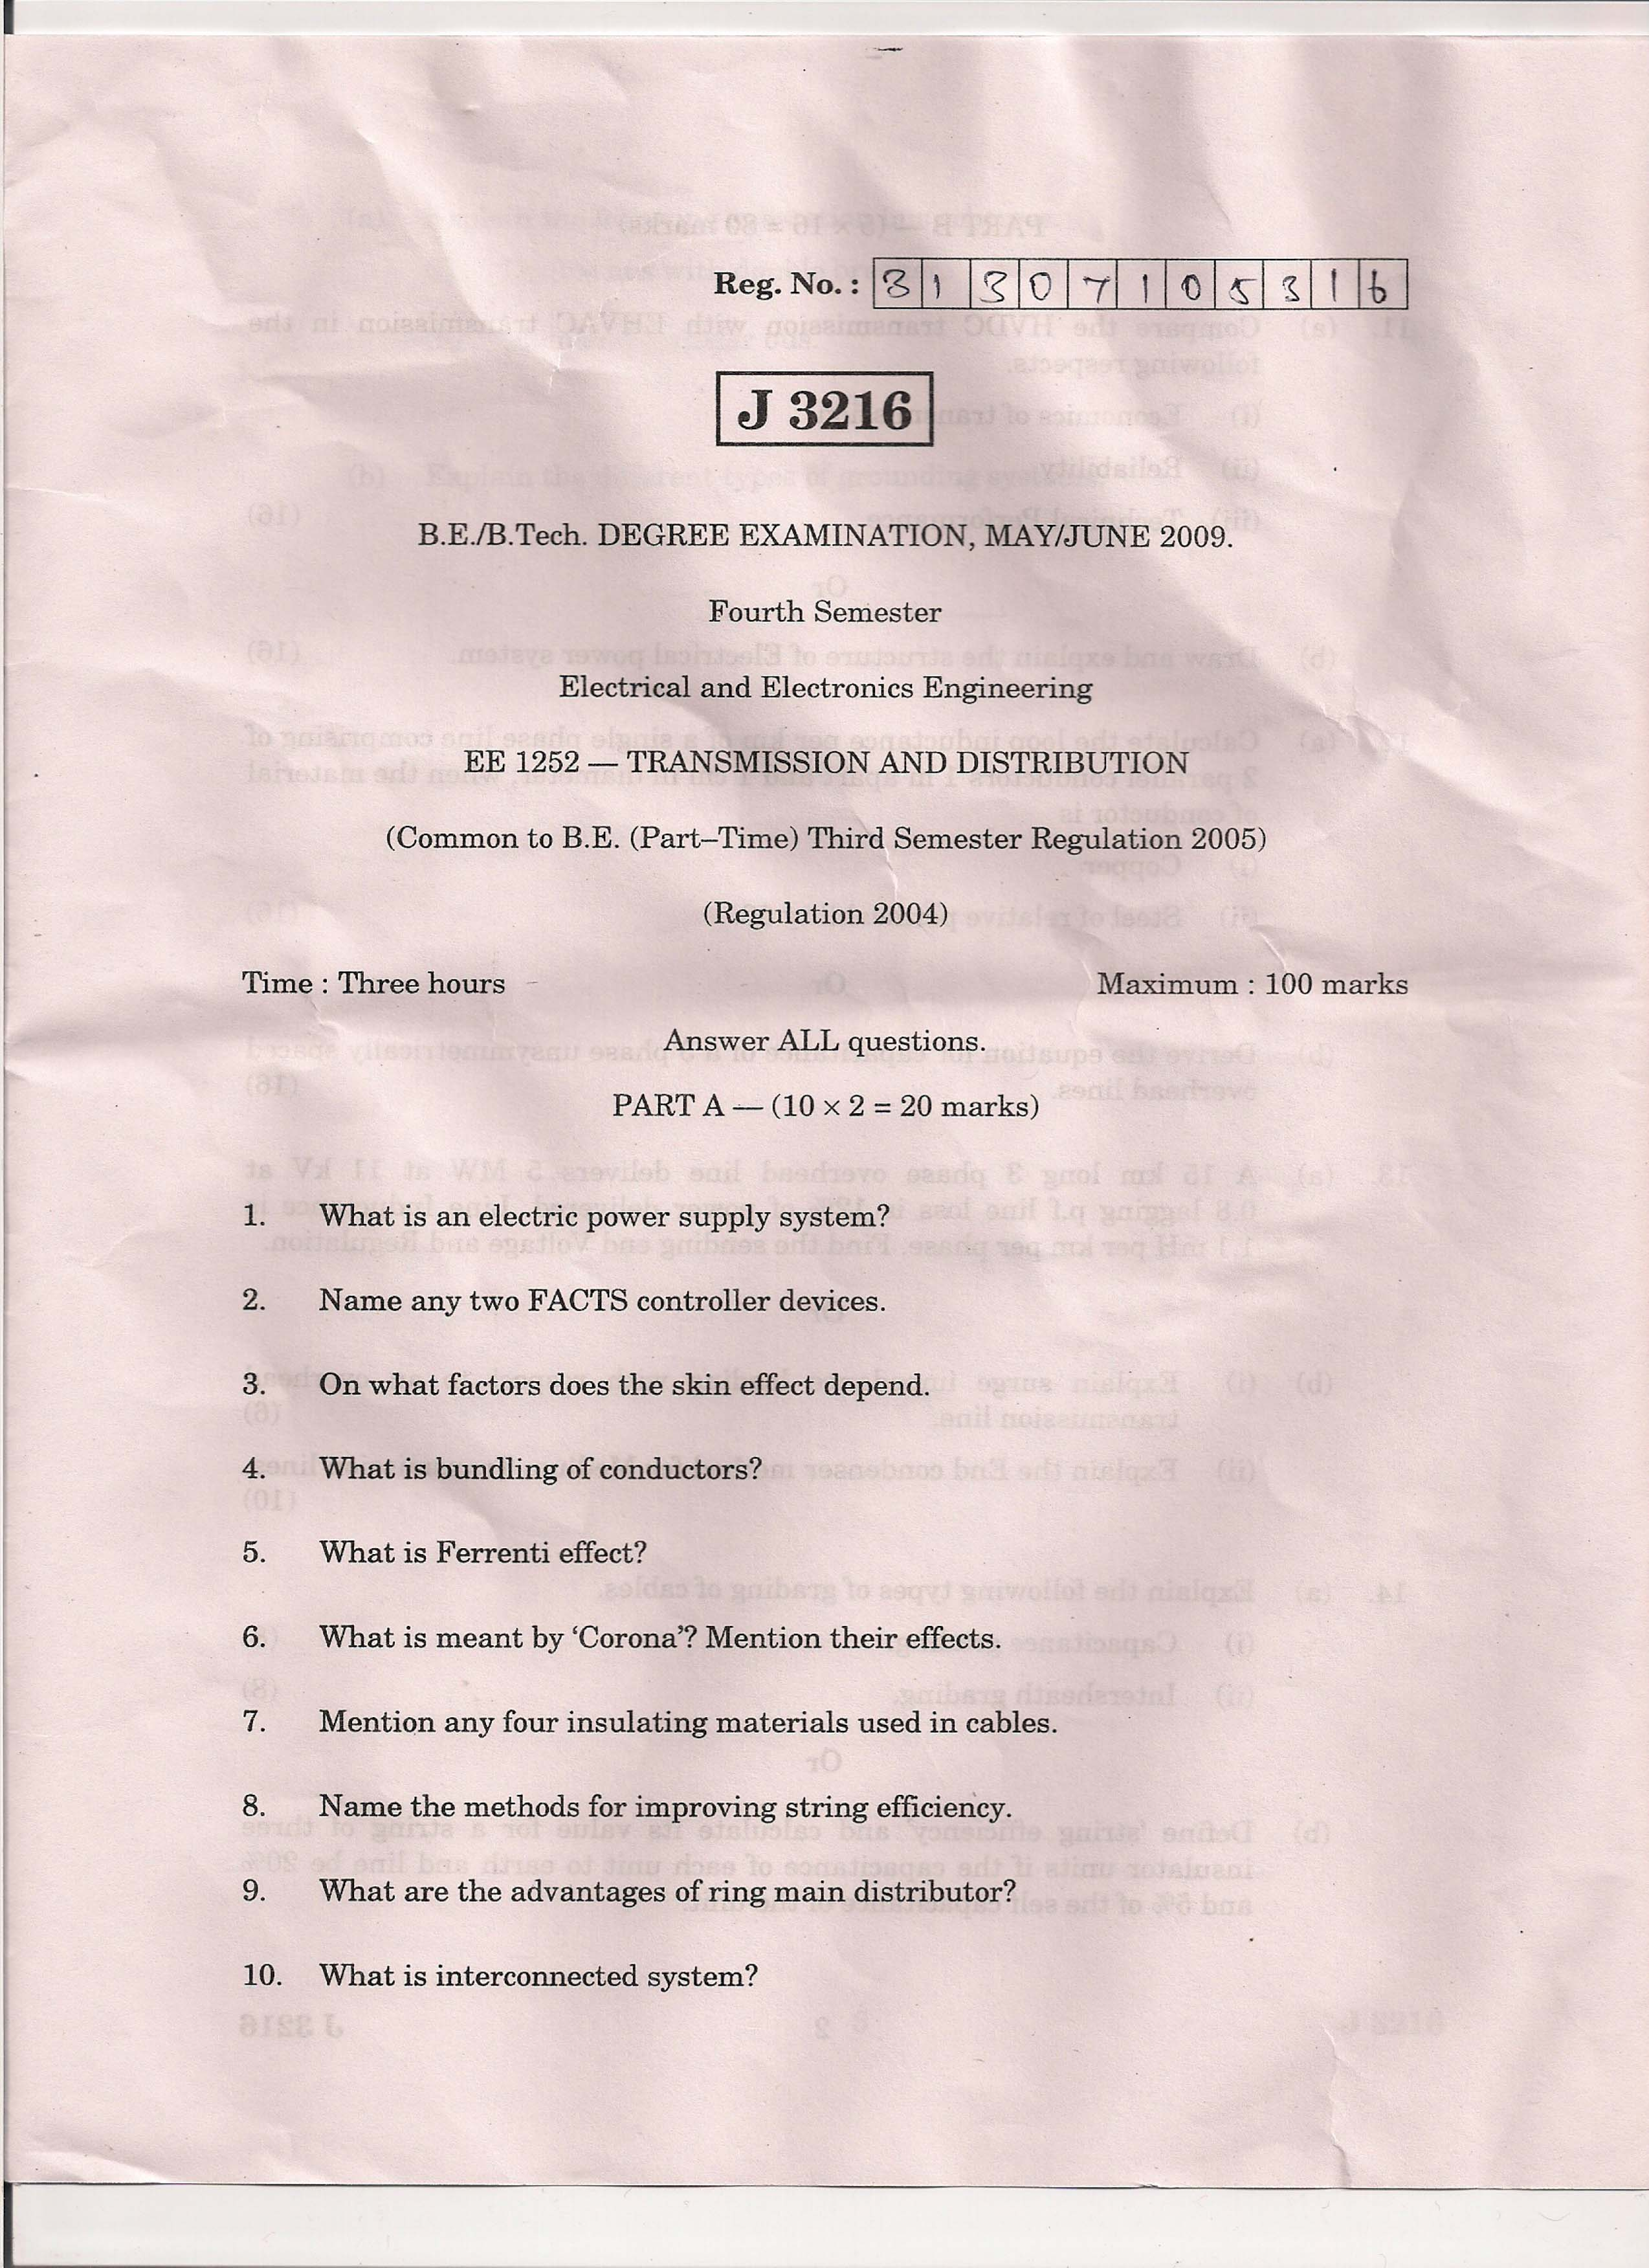 EE2303 TRANSMISSION AND DISTRIBUTION MAY/JUNE 2009 Fifth Semester